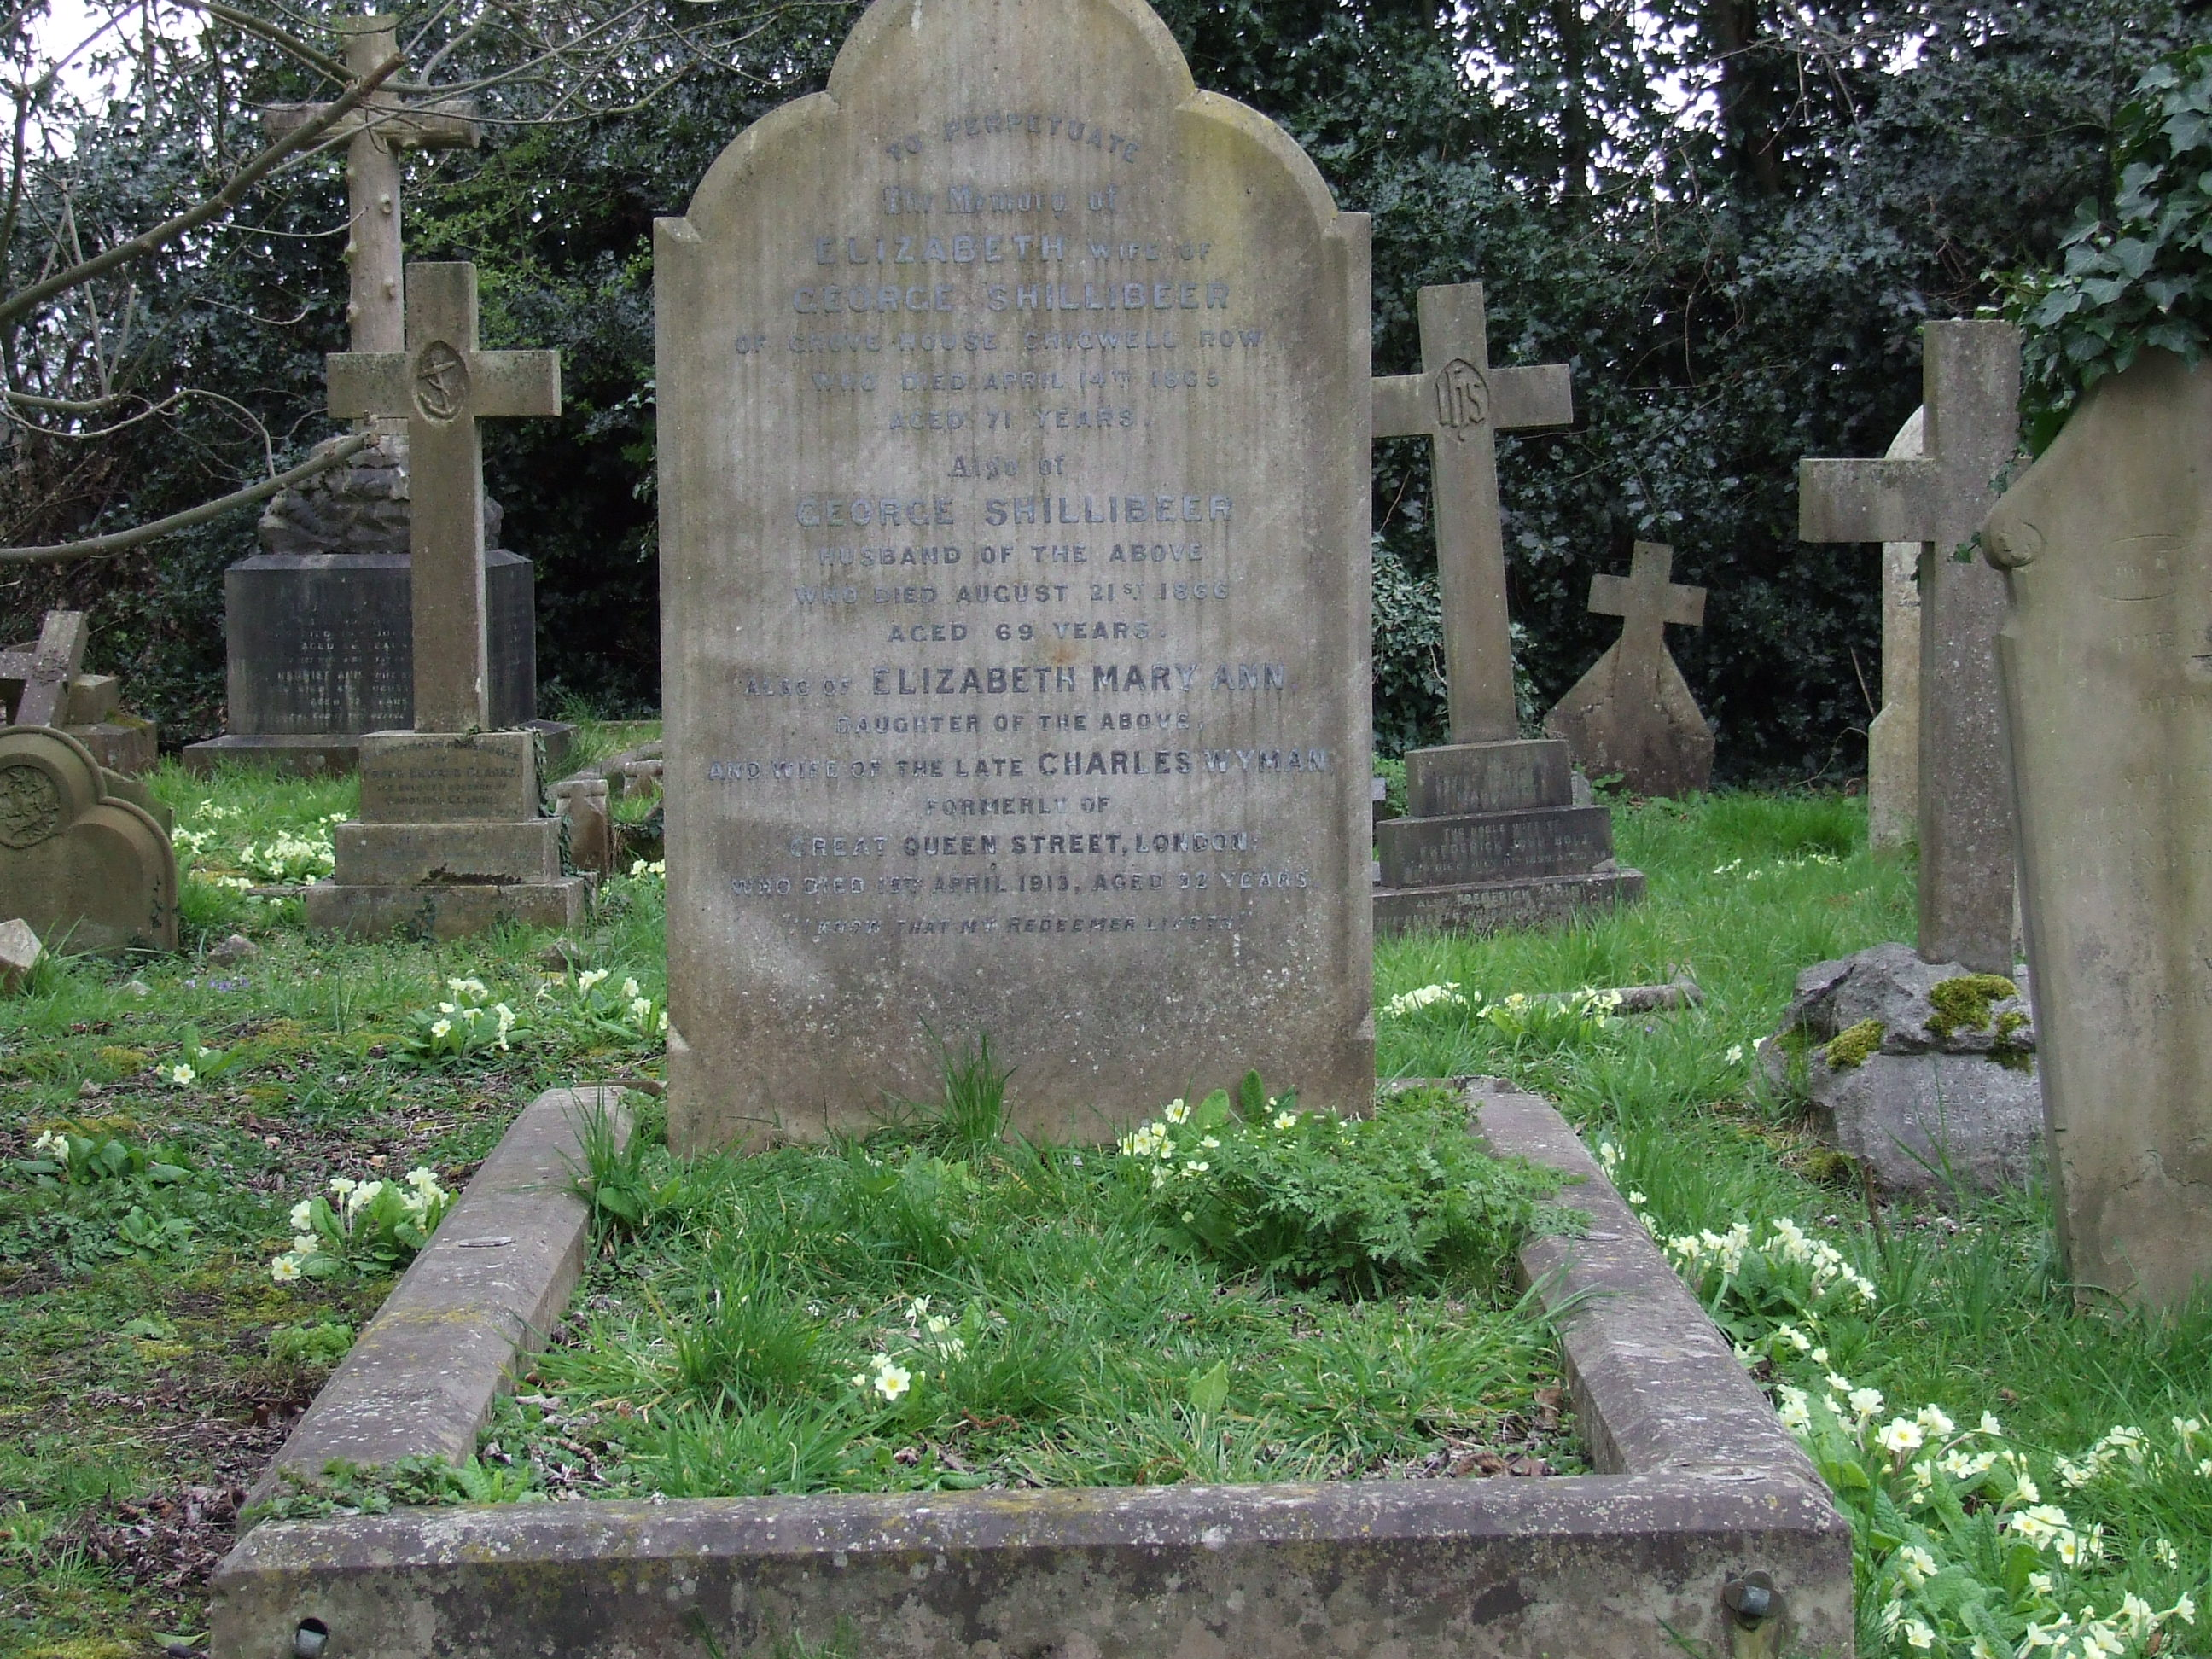 The George Shillibeer grave Chigwell